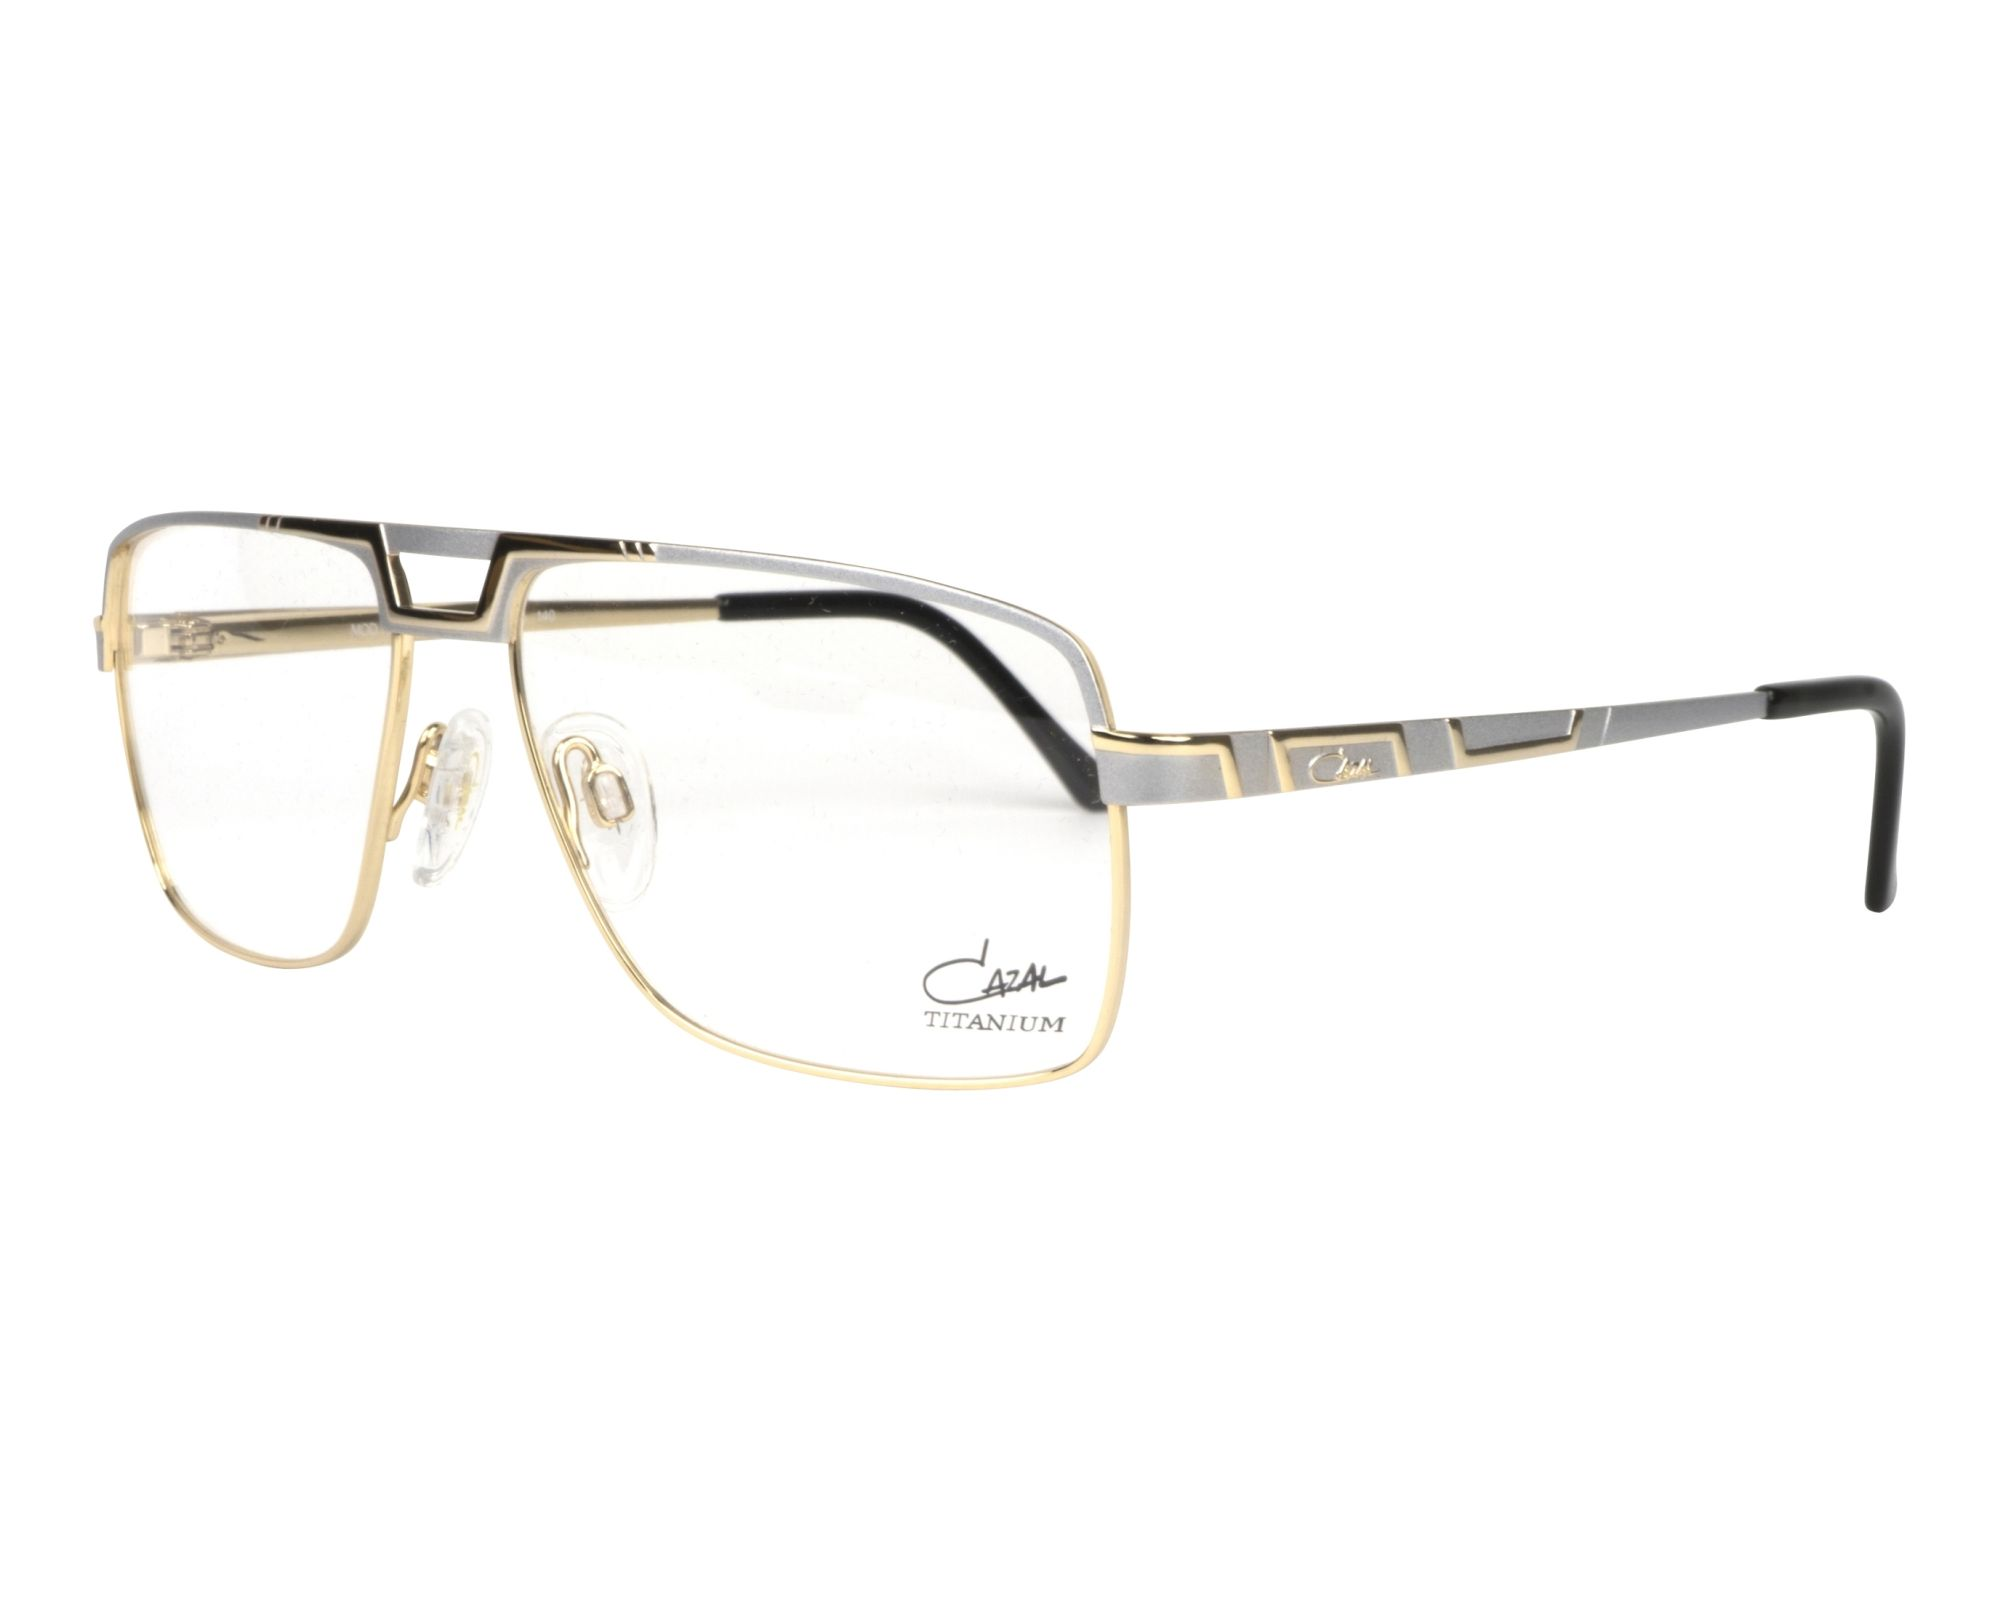 eyeglasses Cazal M-7068 002 57-15 Silver Gold profile view